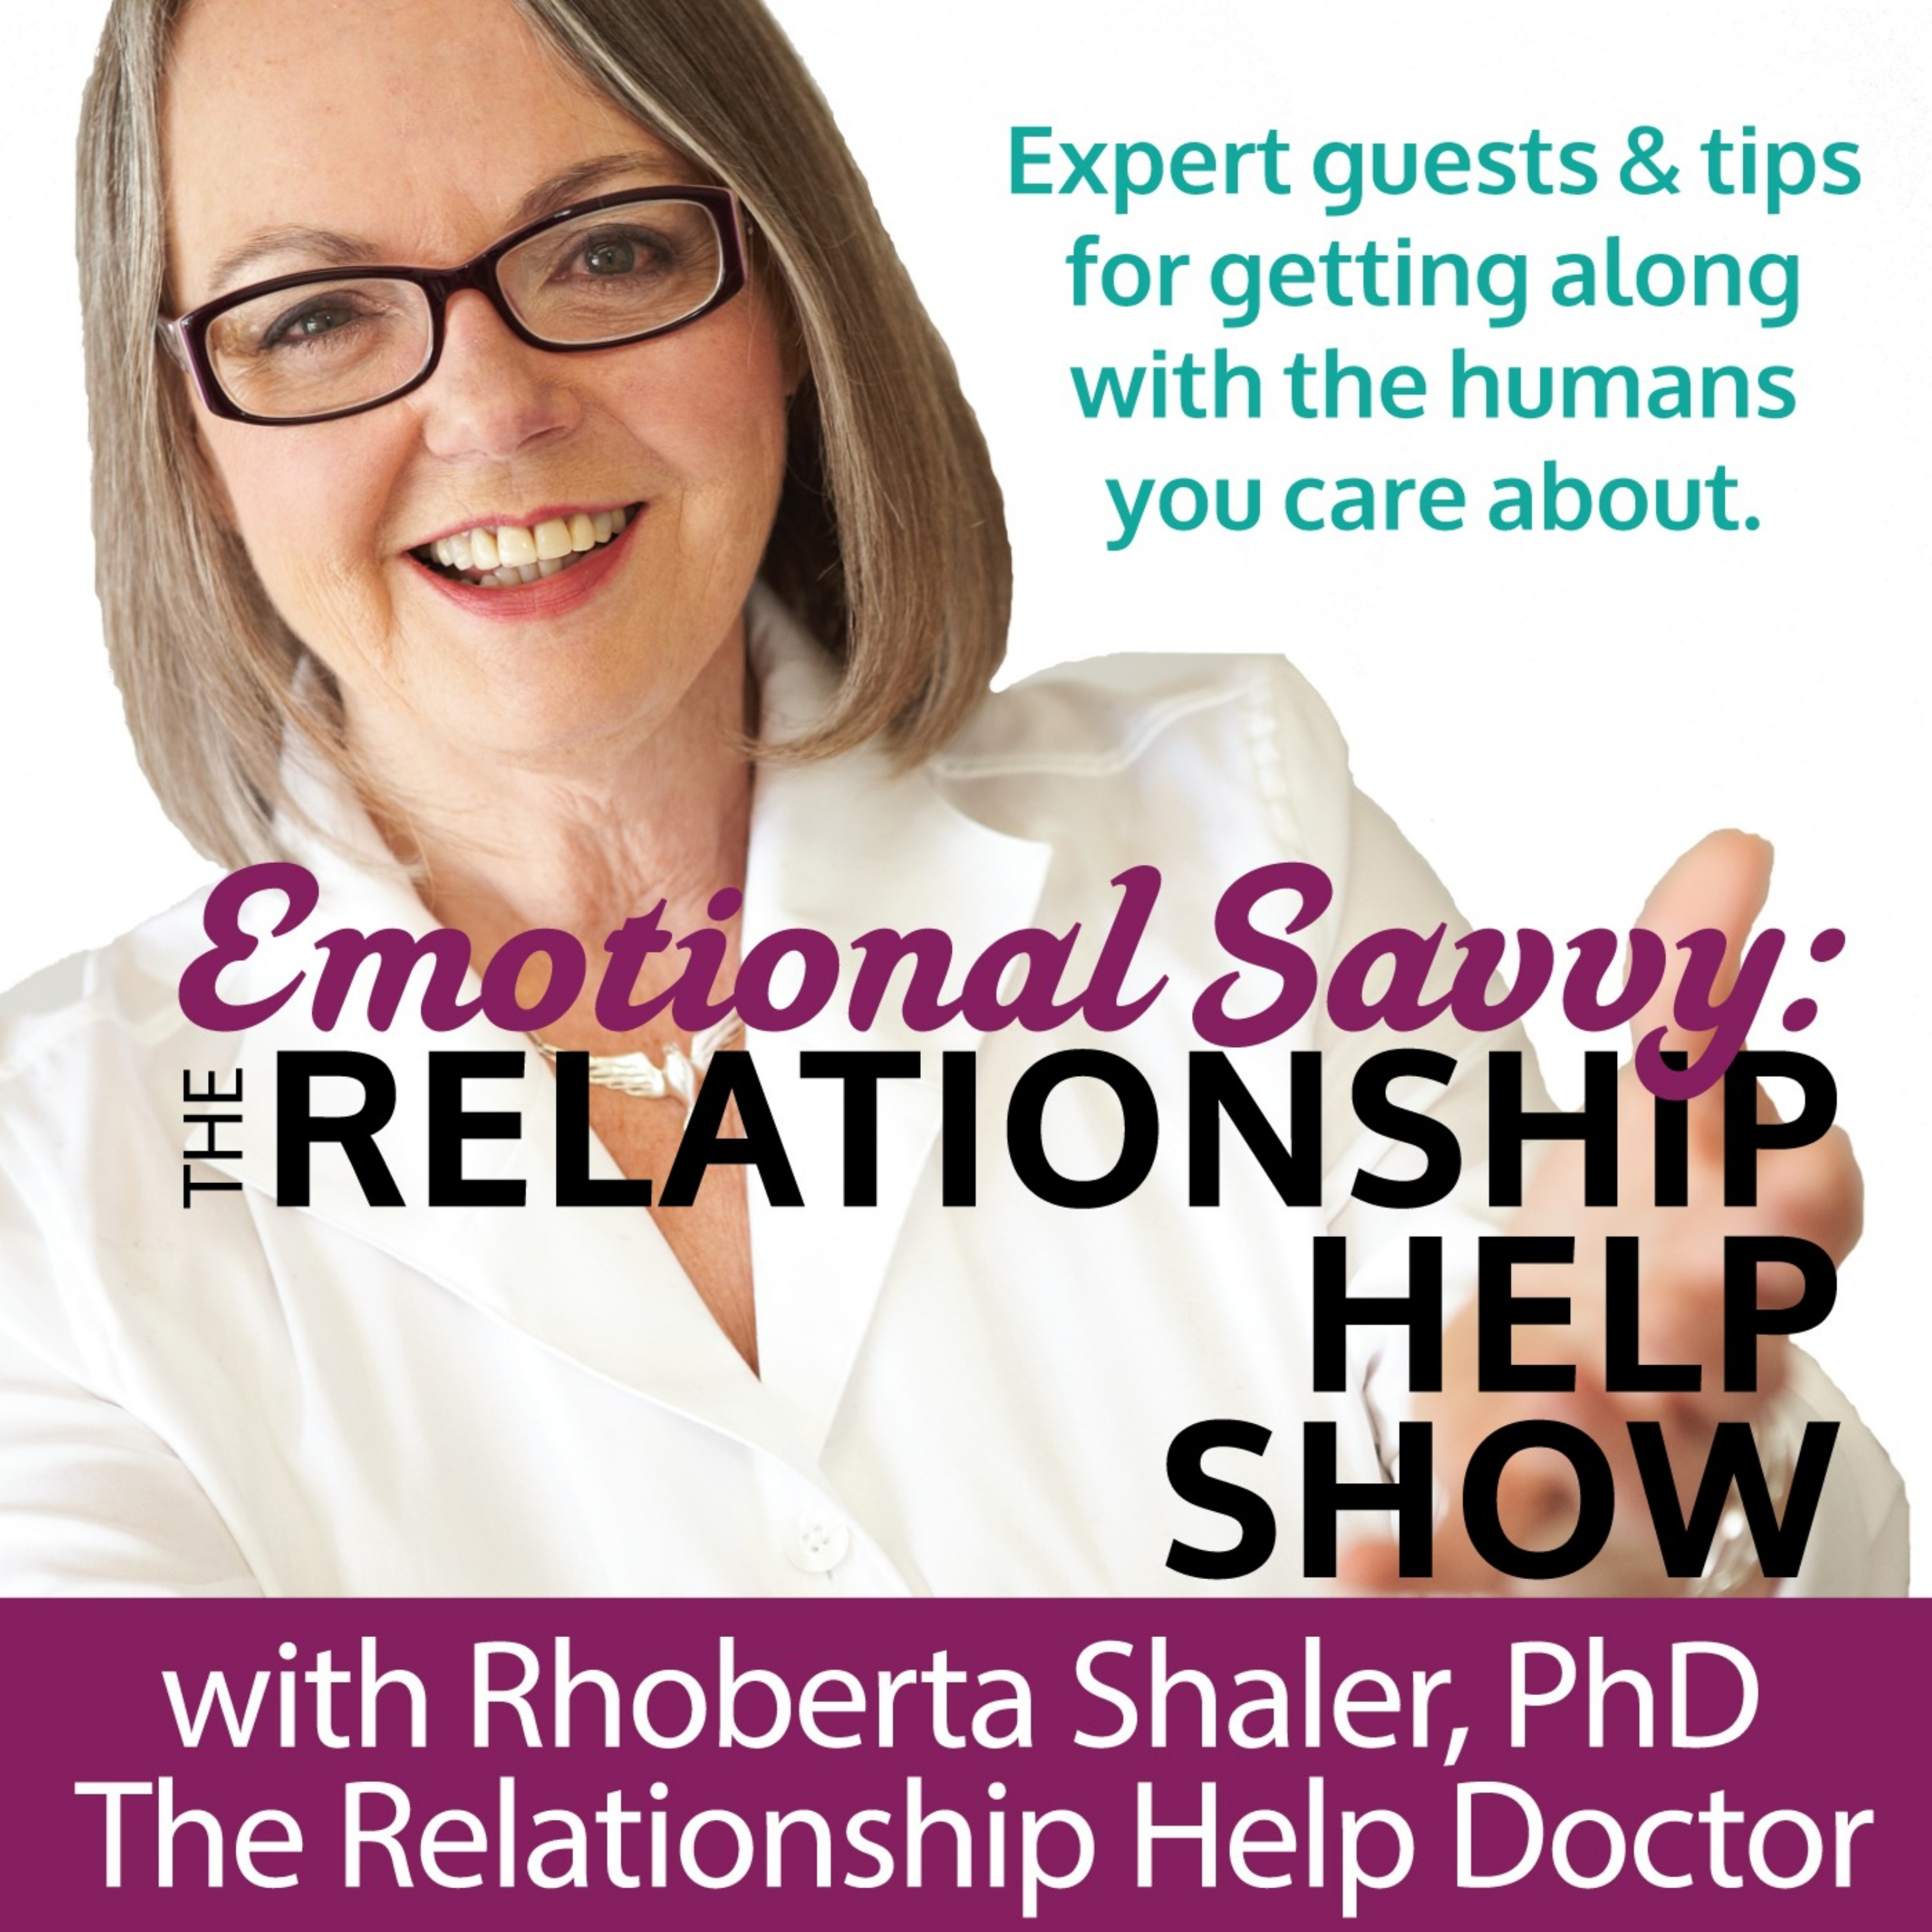 What You Need First If You Want to Have Great Relationships. Host Dr. Rhoberta Shaler